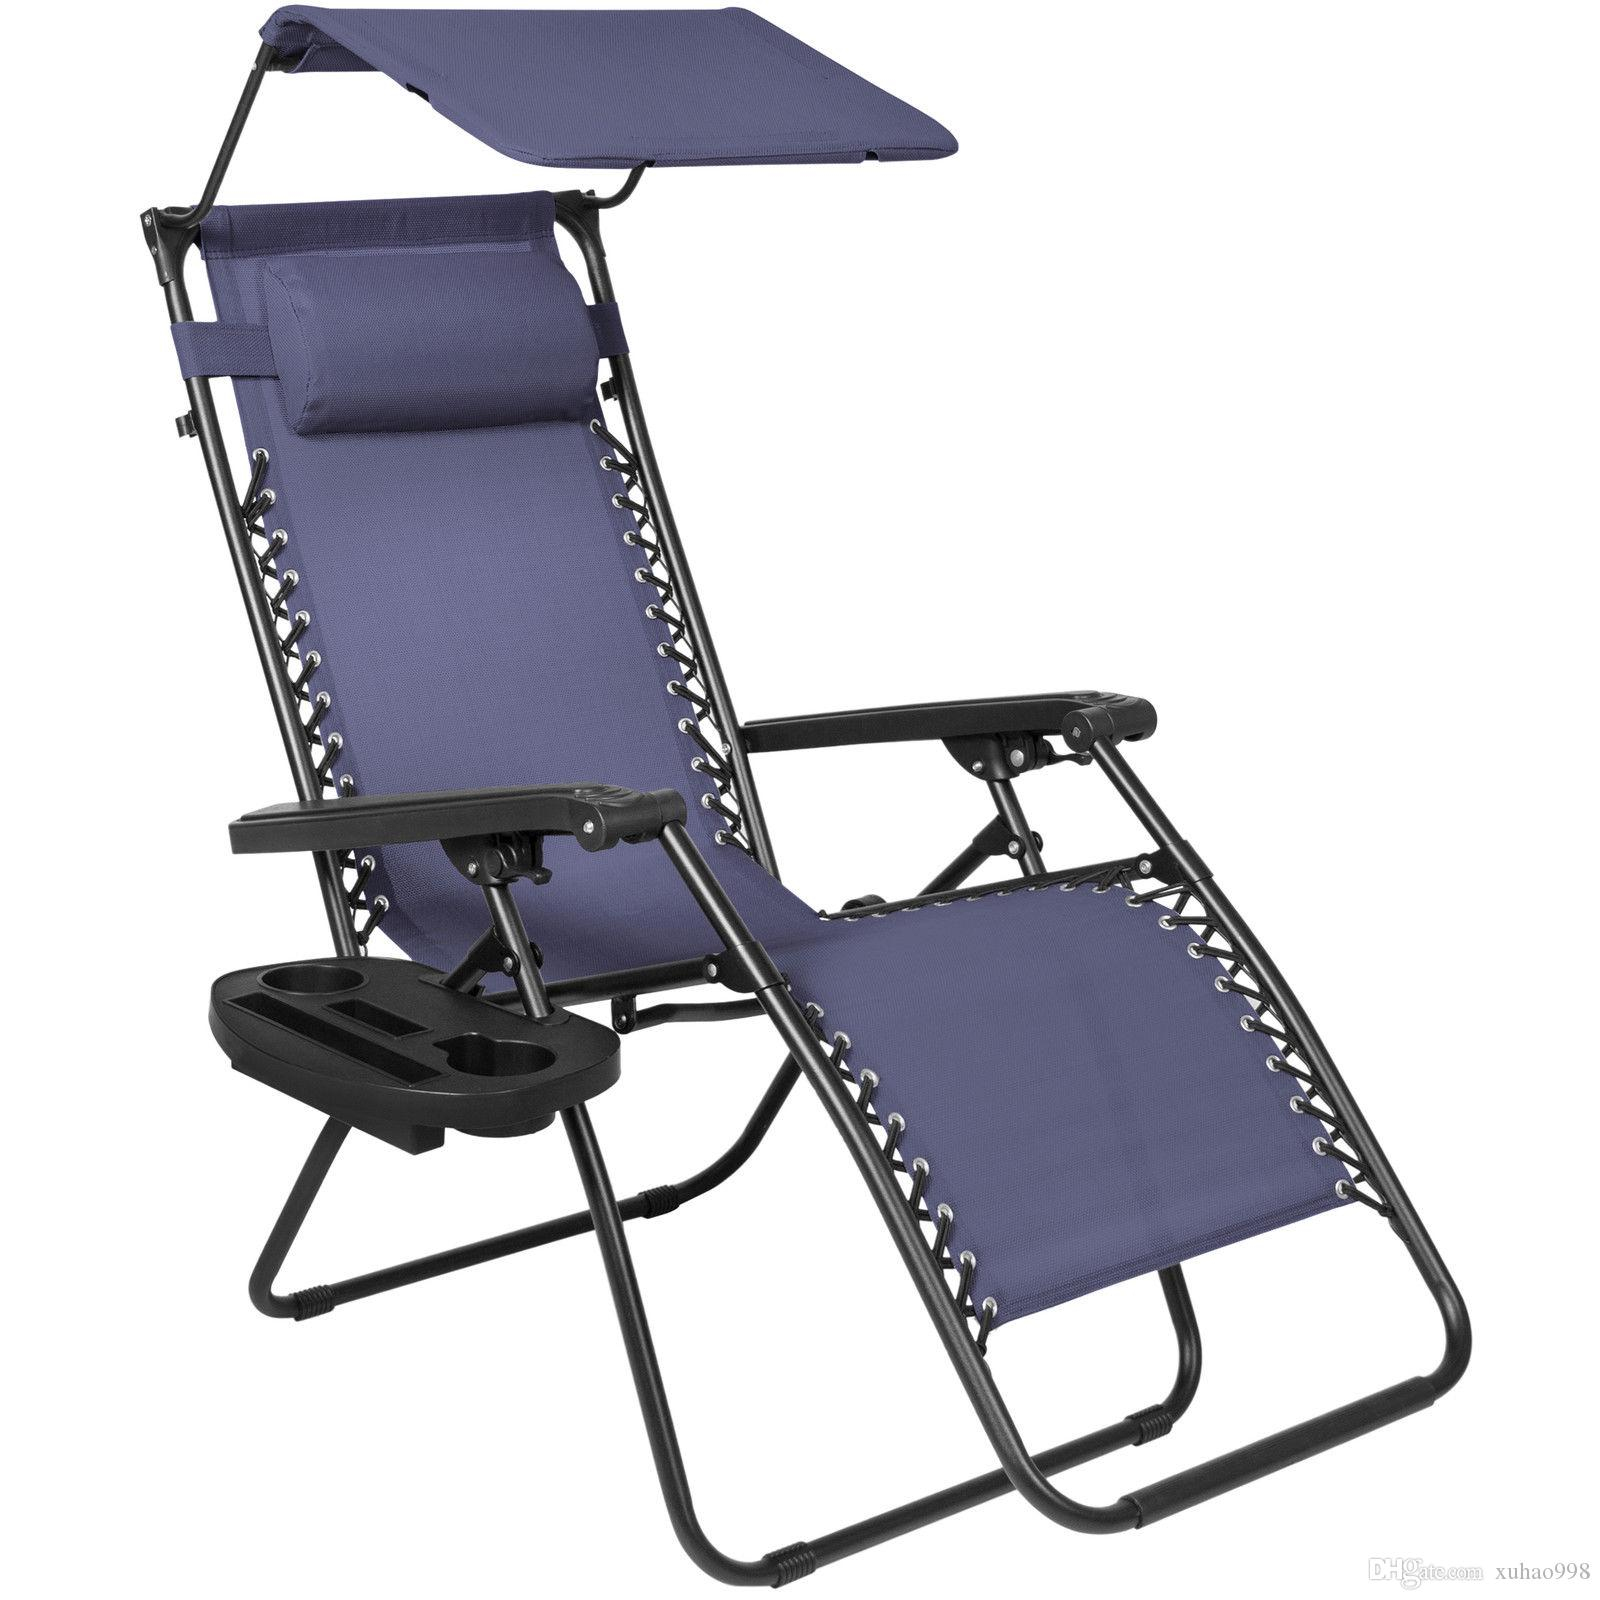 chair with shade canopy futon sleeper chairs folding zero gravity recliner lounge w cup holder navy blue online 37 72 piece on xuhao998 s store dhgate com